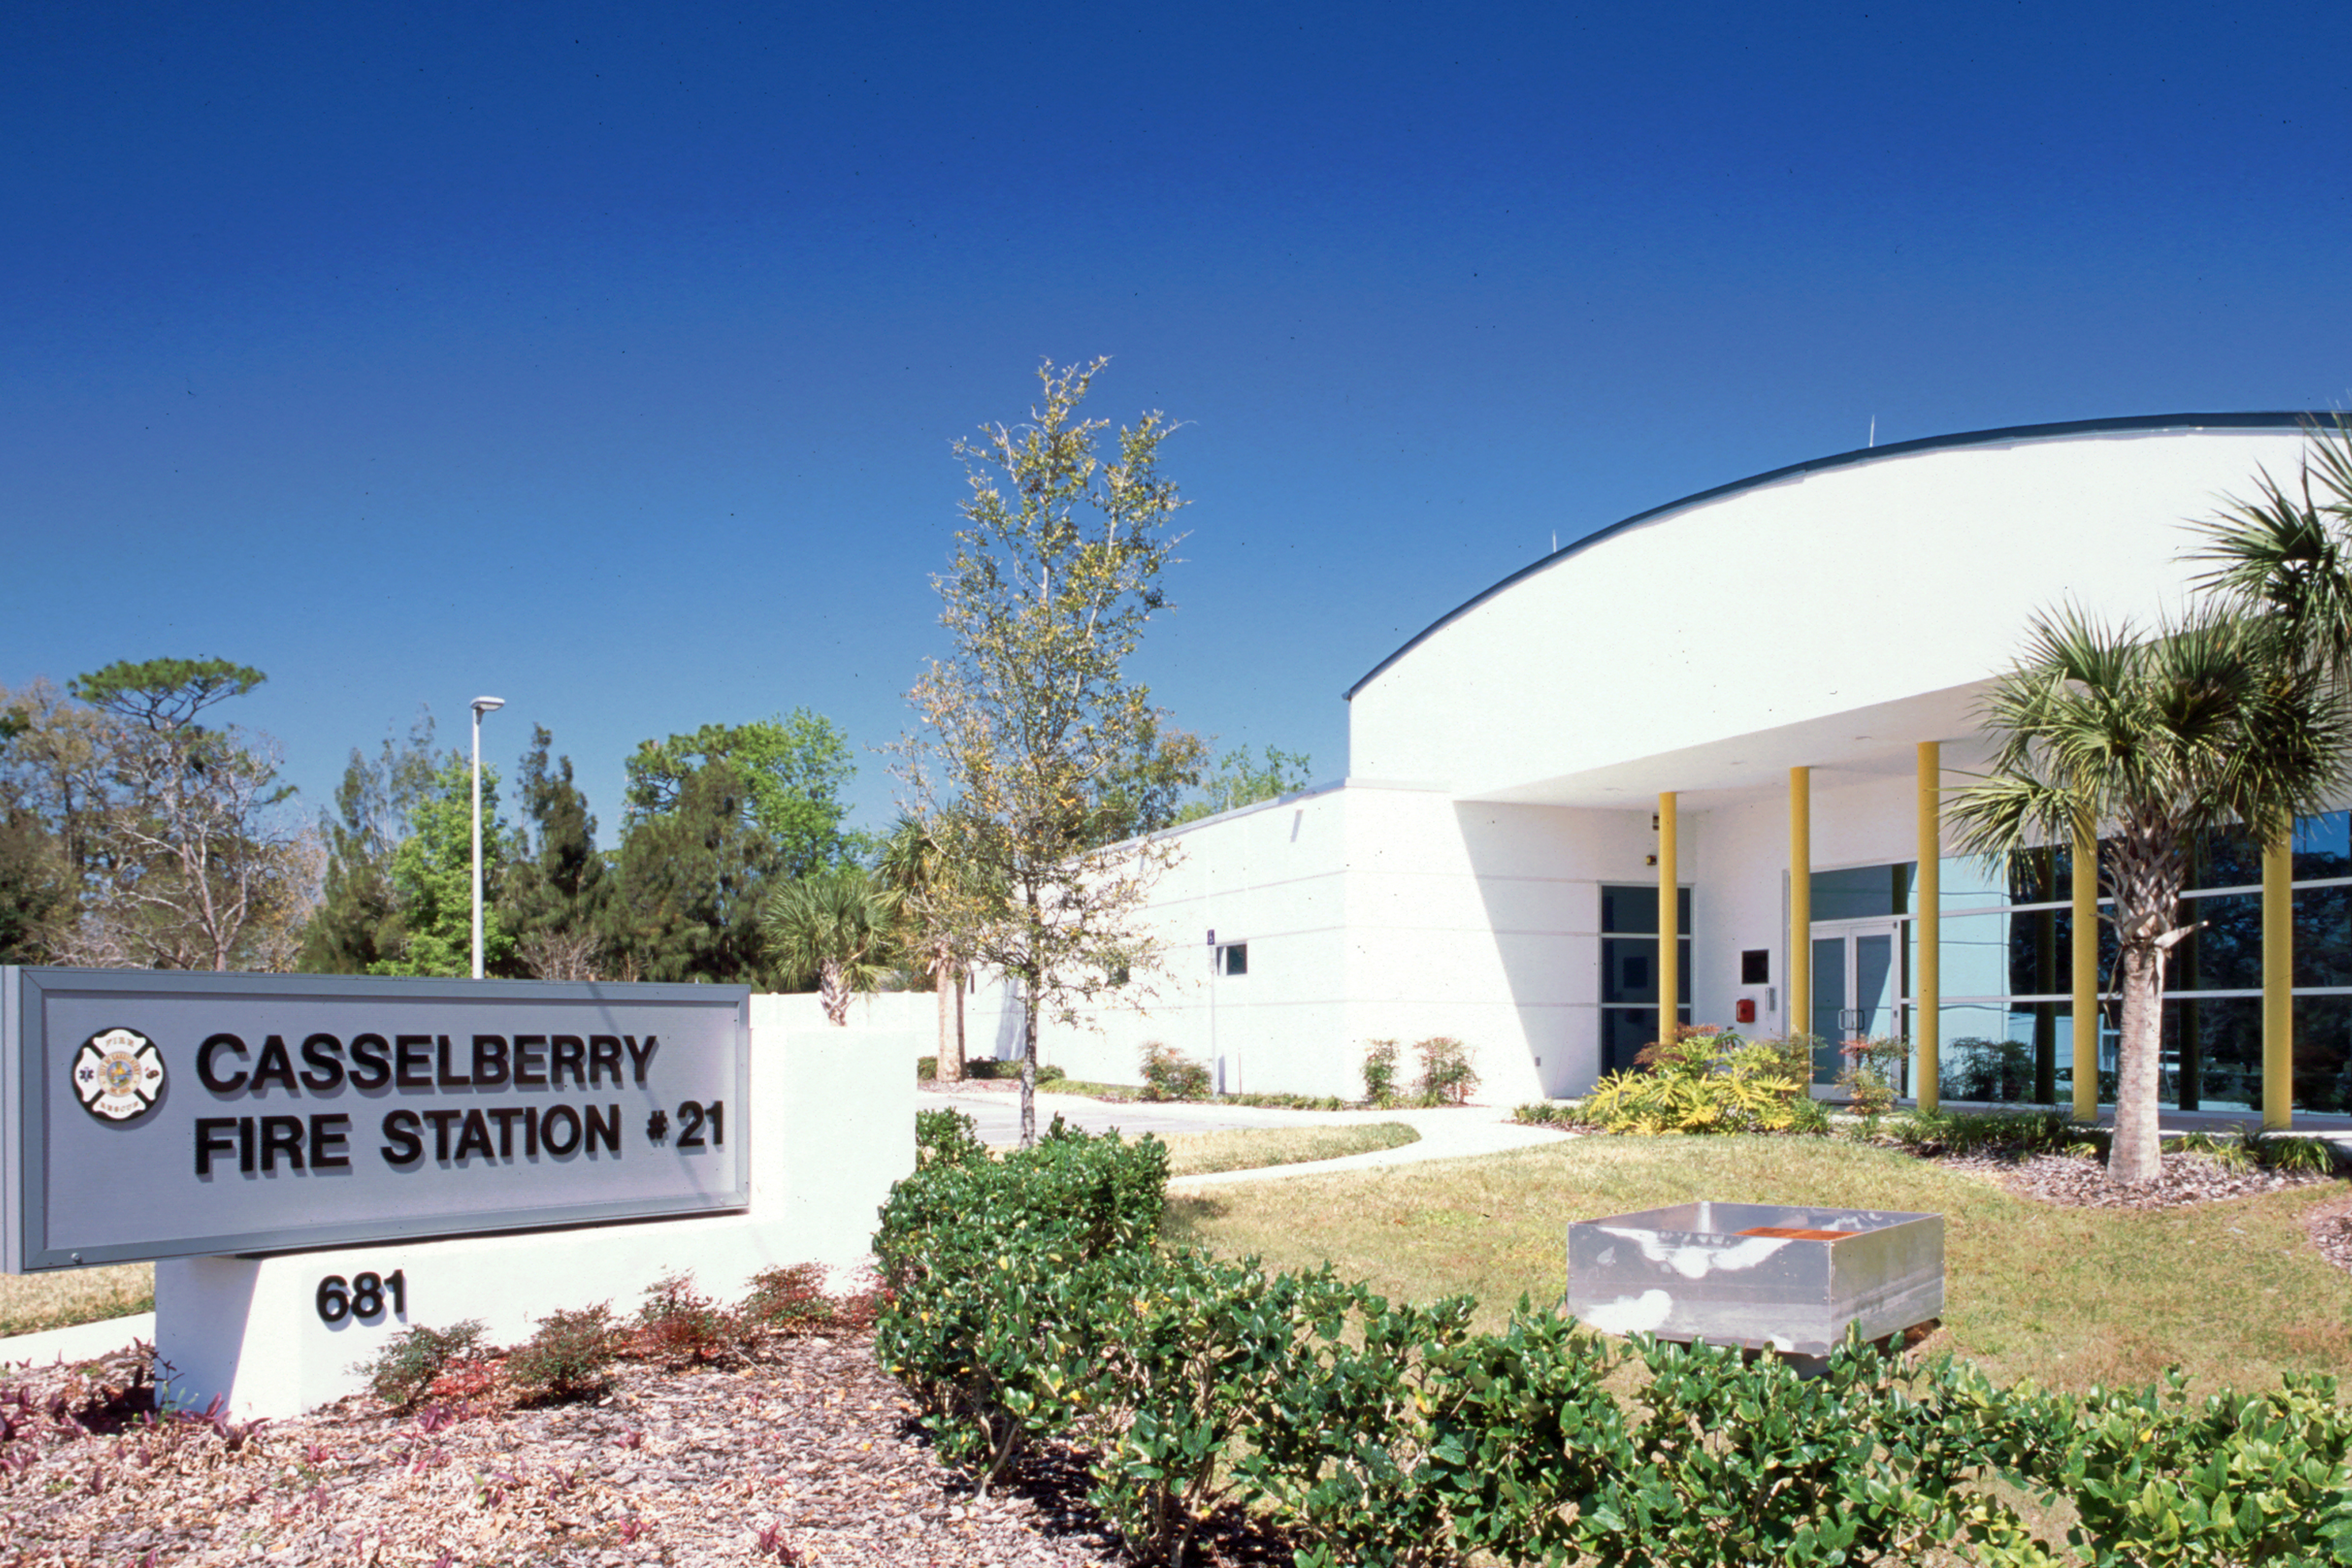 Casselberry Fire Station No. 21